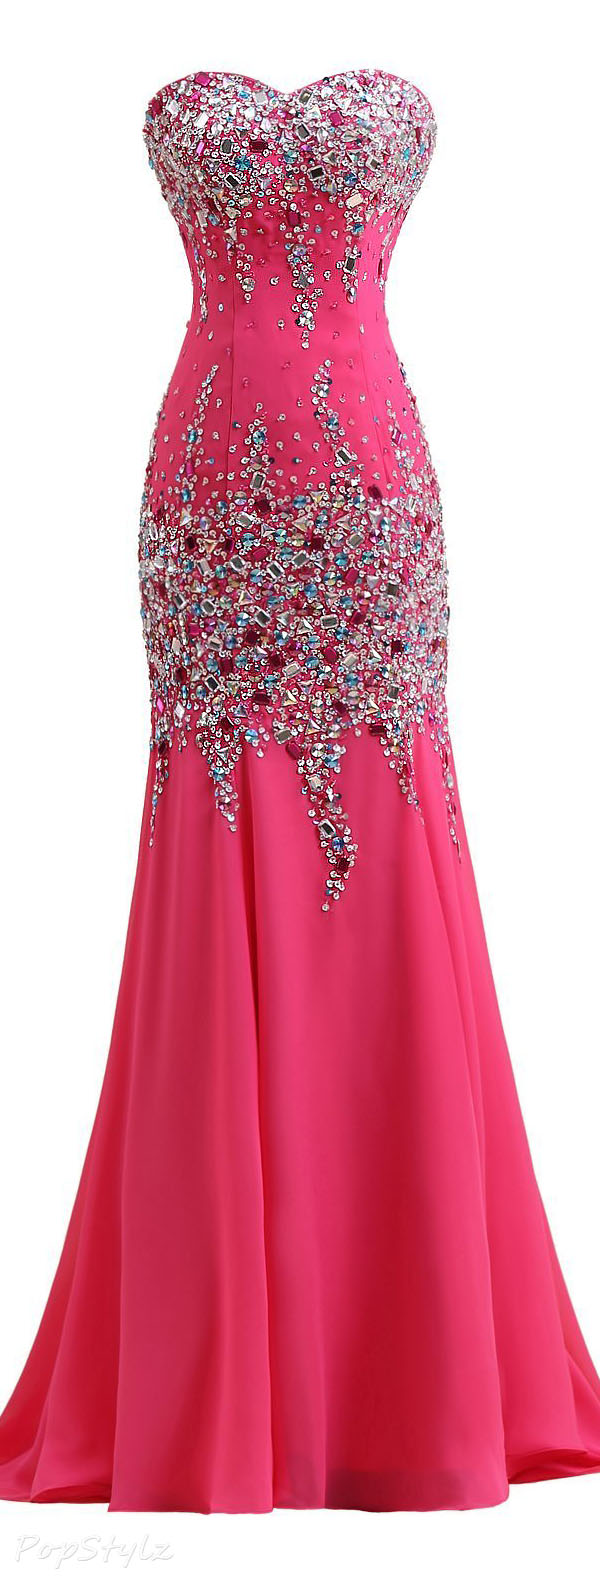 Sunvary Chiffon Rhinestone Strapless Sheath Mermaid Gown